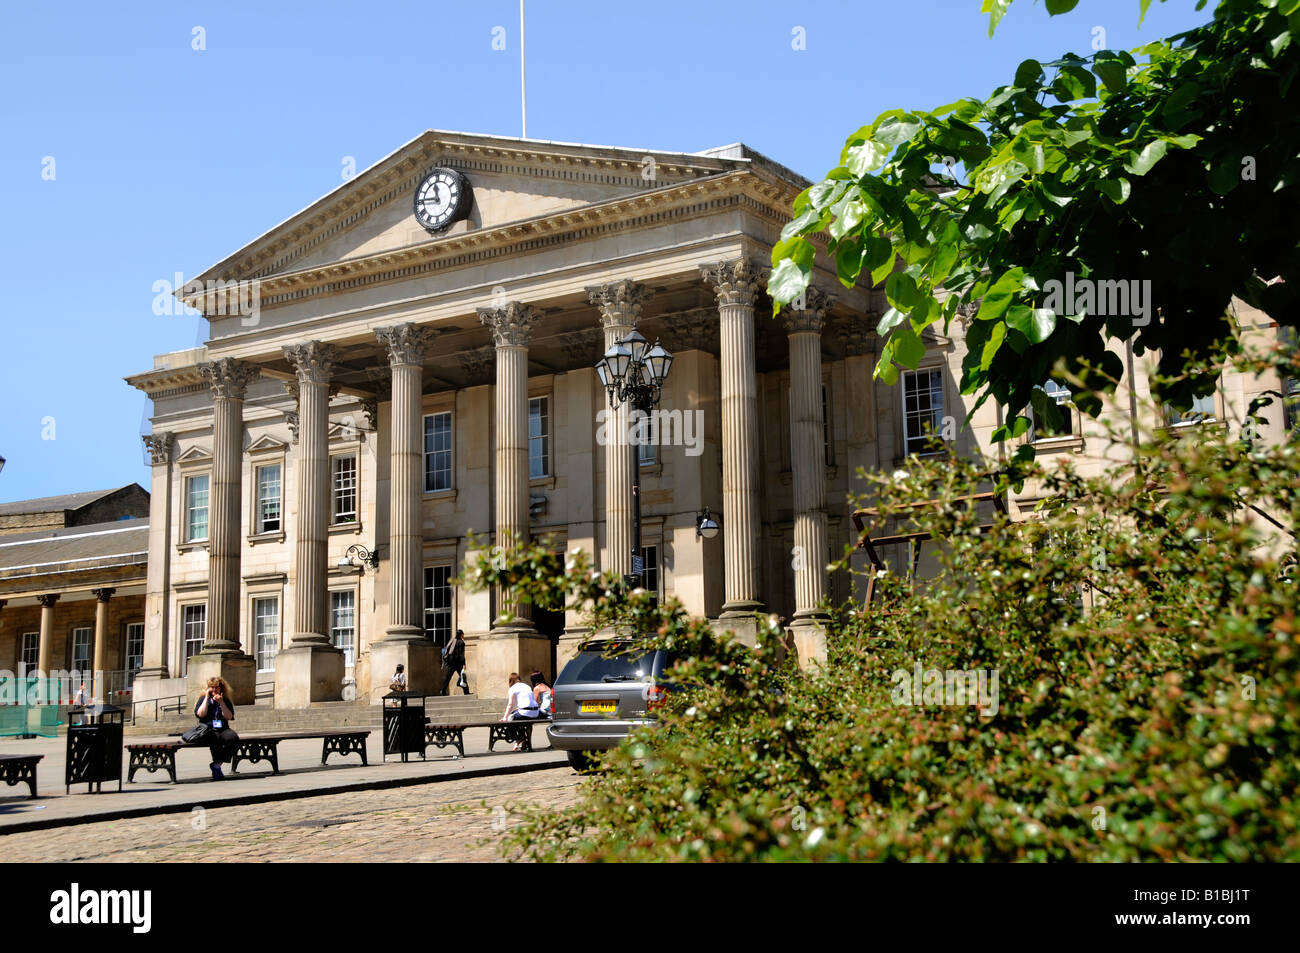 The classical colonnade and portico of the grand entrance of the  Victorian railway station seen beyond foliage - Stock Image